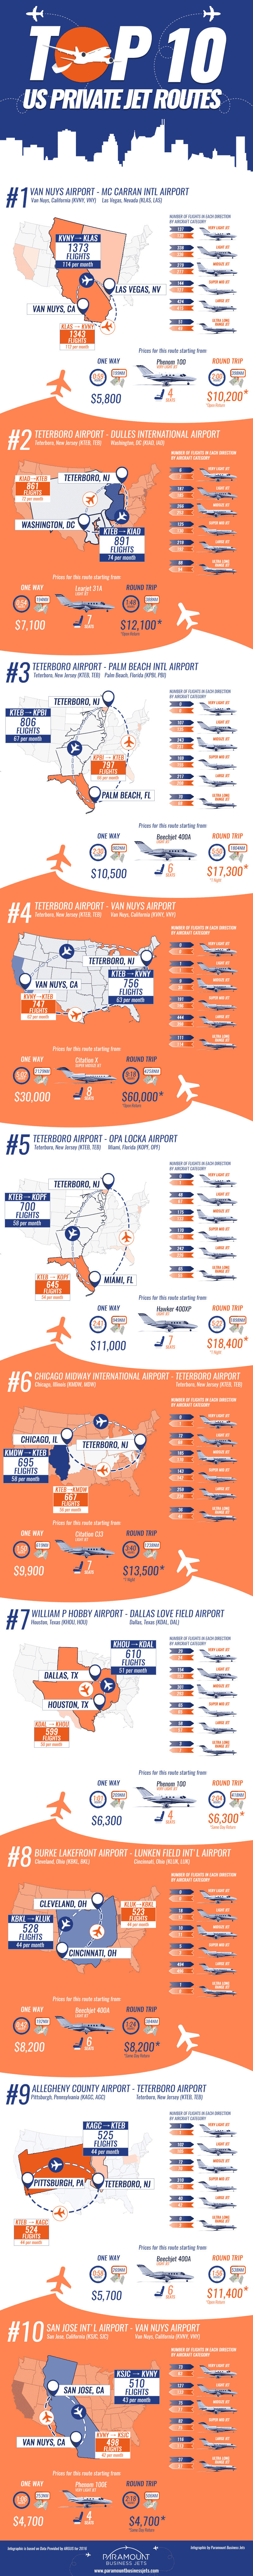 Top 10 US Private Jet Routes in 2016